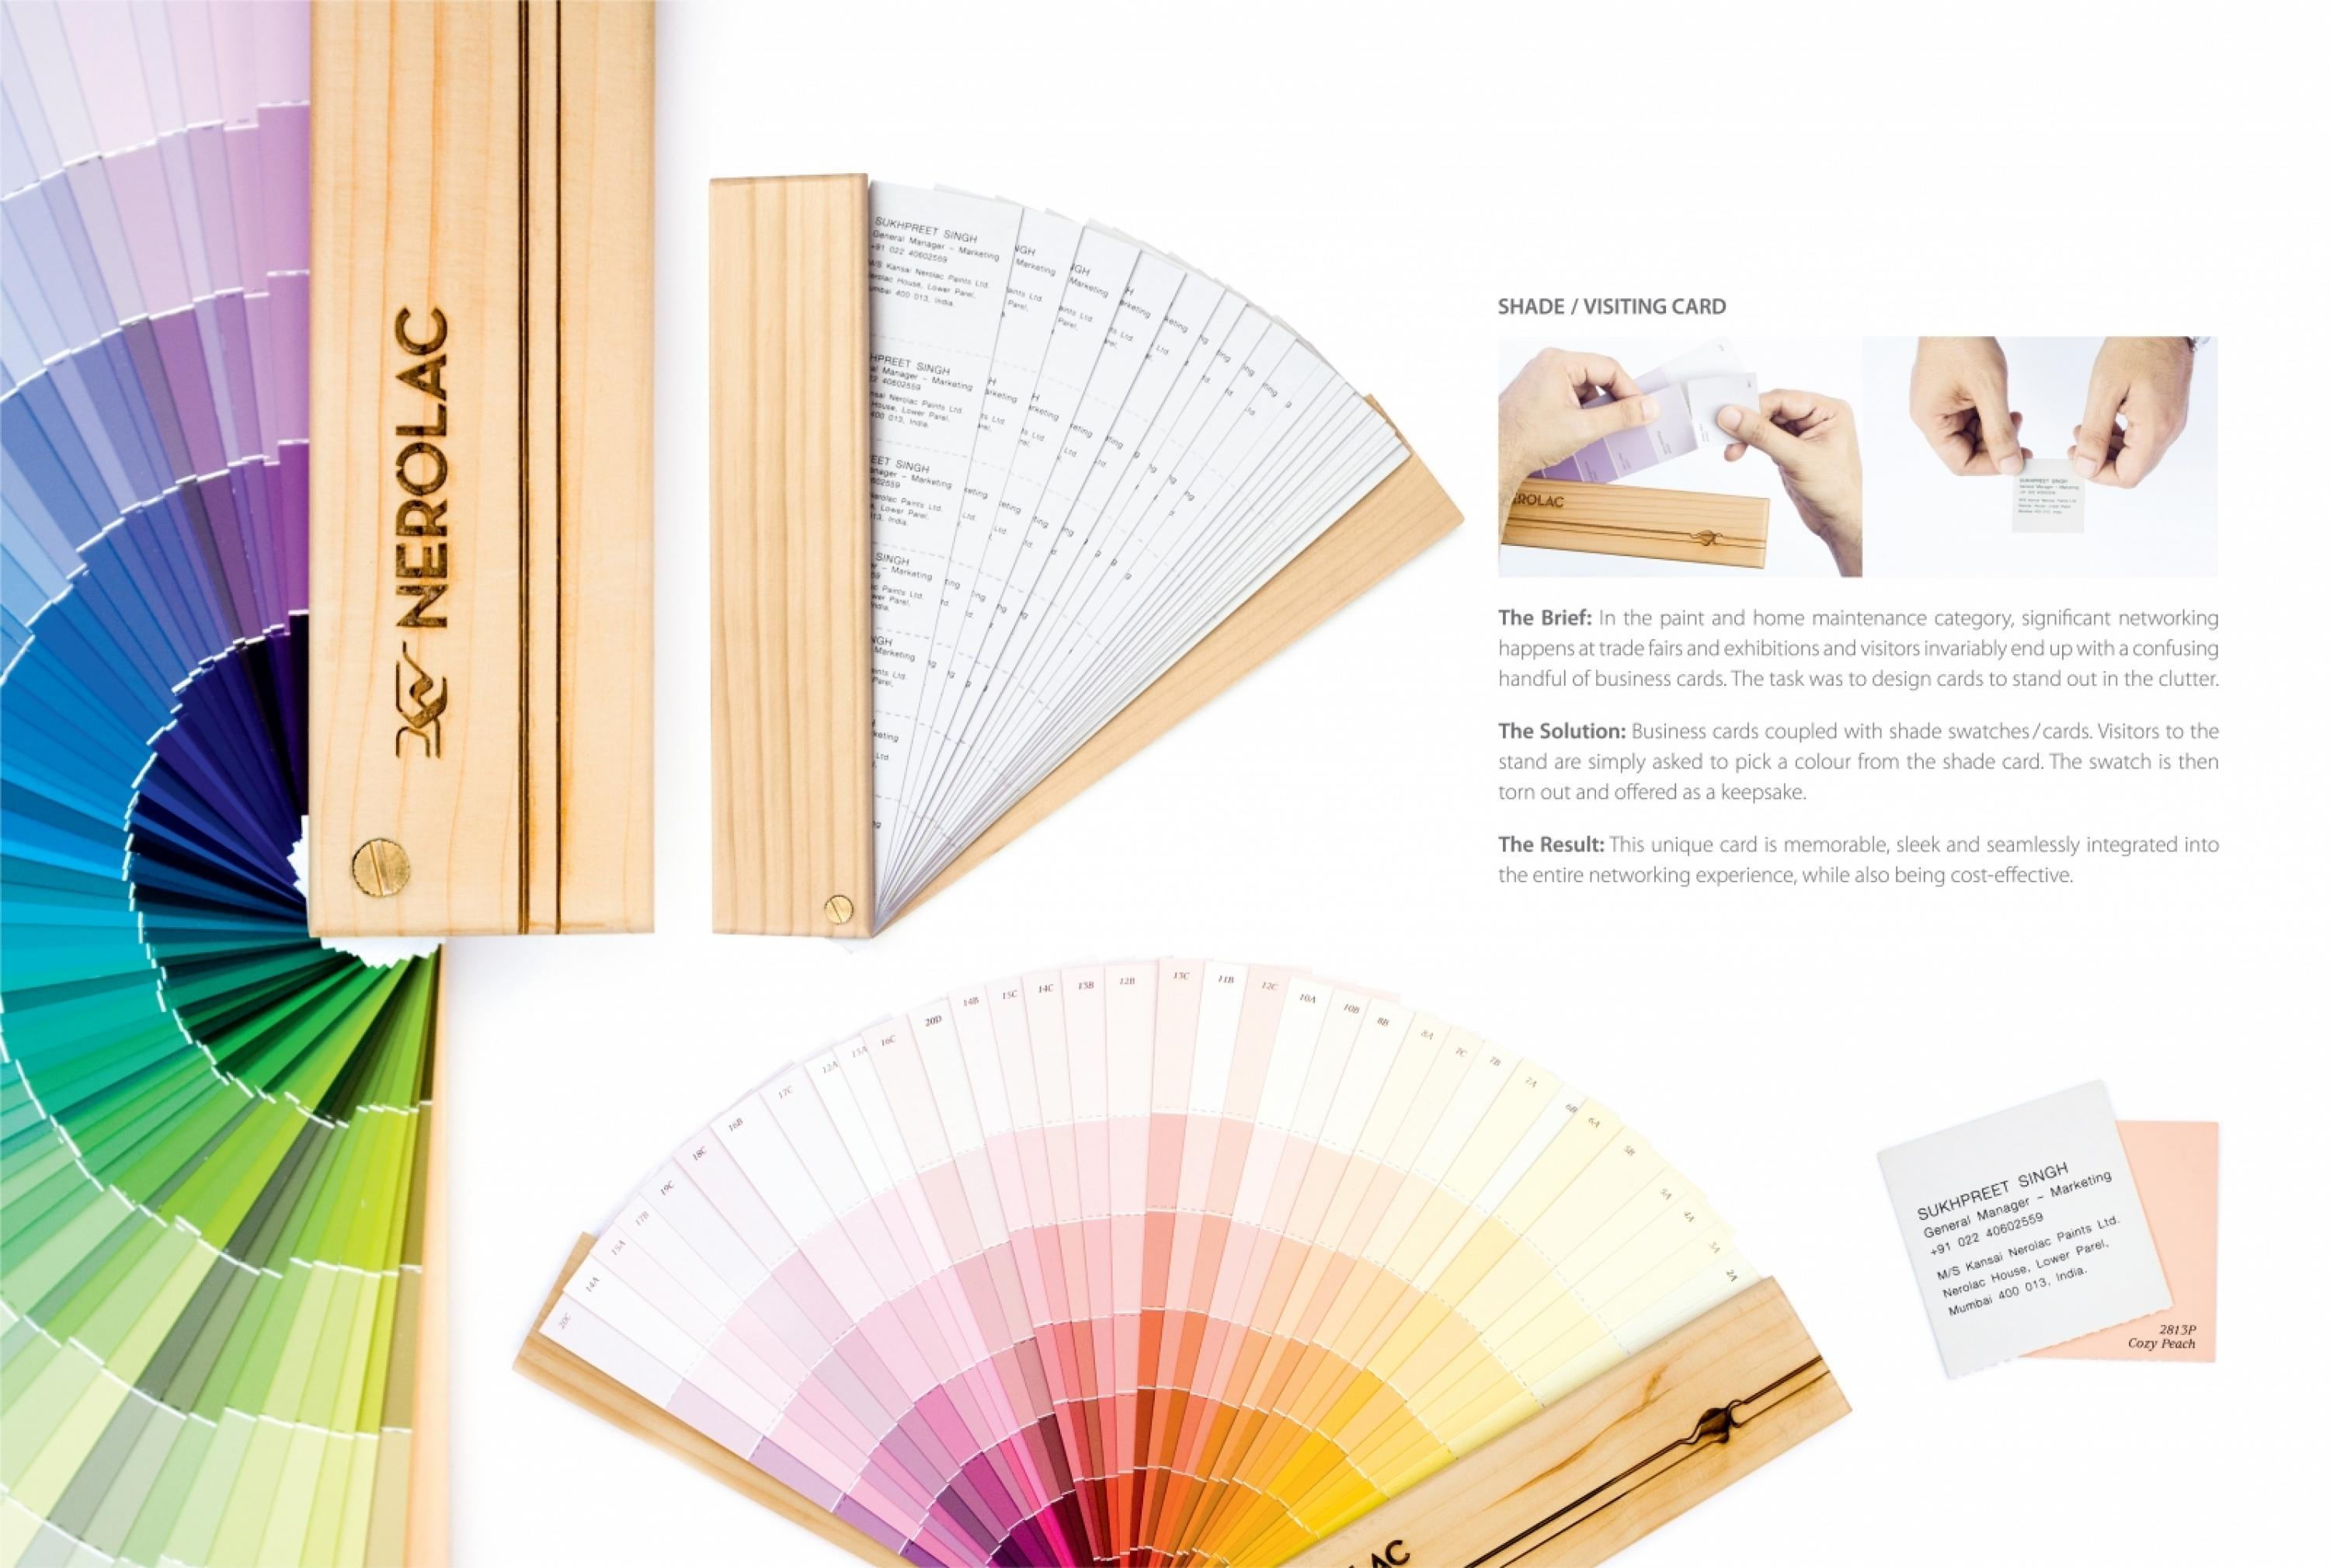 Kansai Nerolac Paints Paint Shade Visiting Card Adeevee